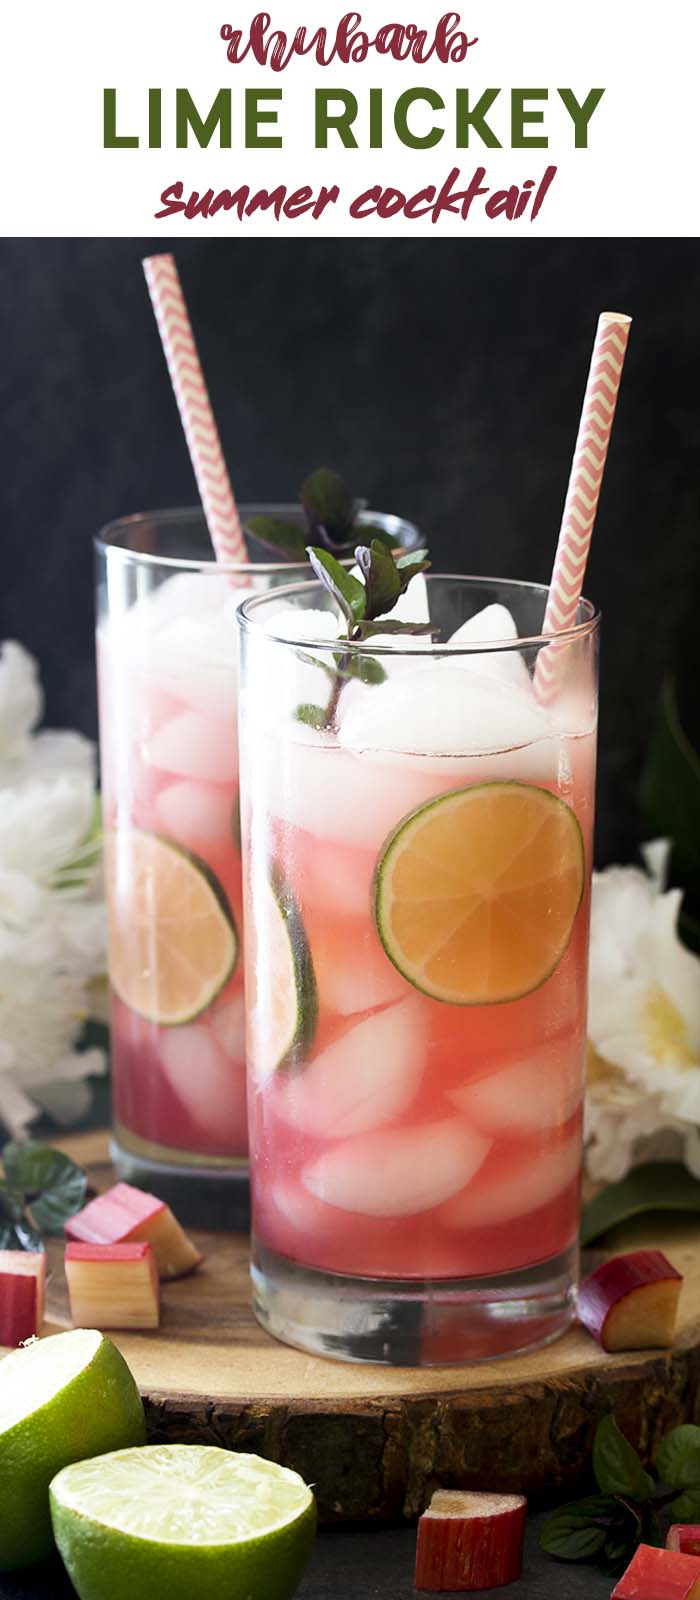 Two rhubarb cocktails in tall glasses with text overlay - Rhubarb Lime Rickey